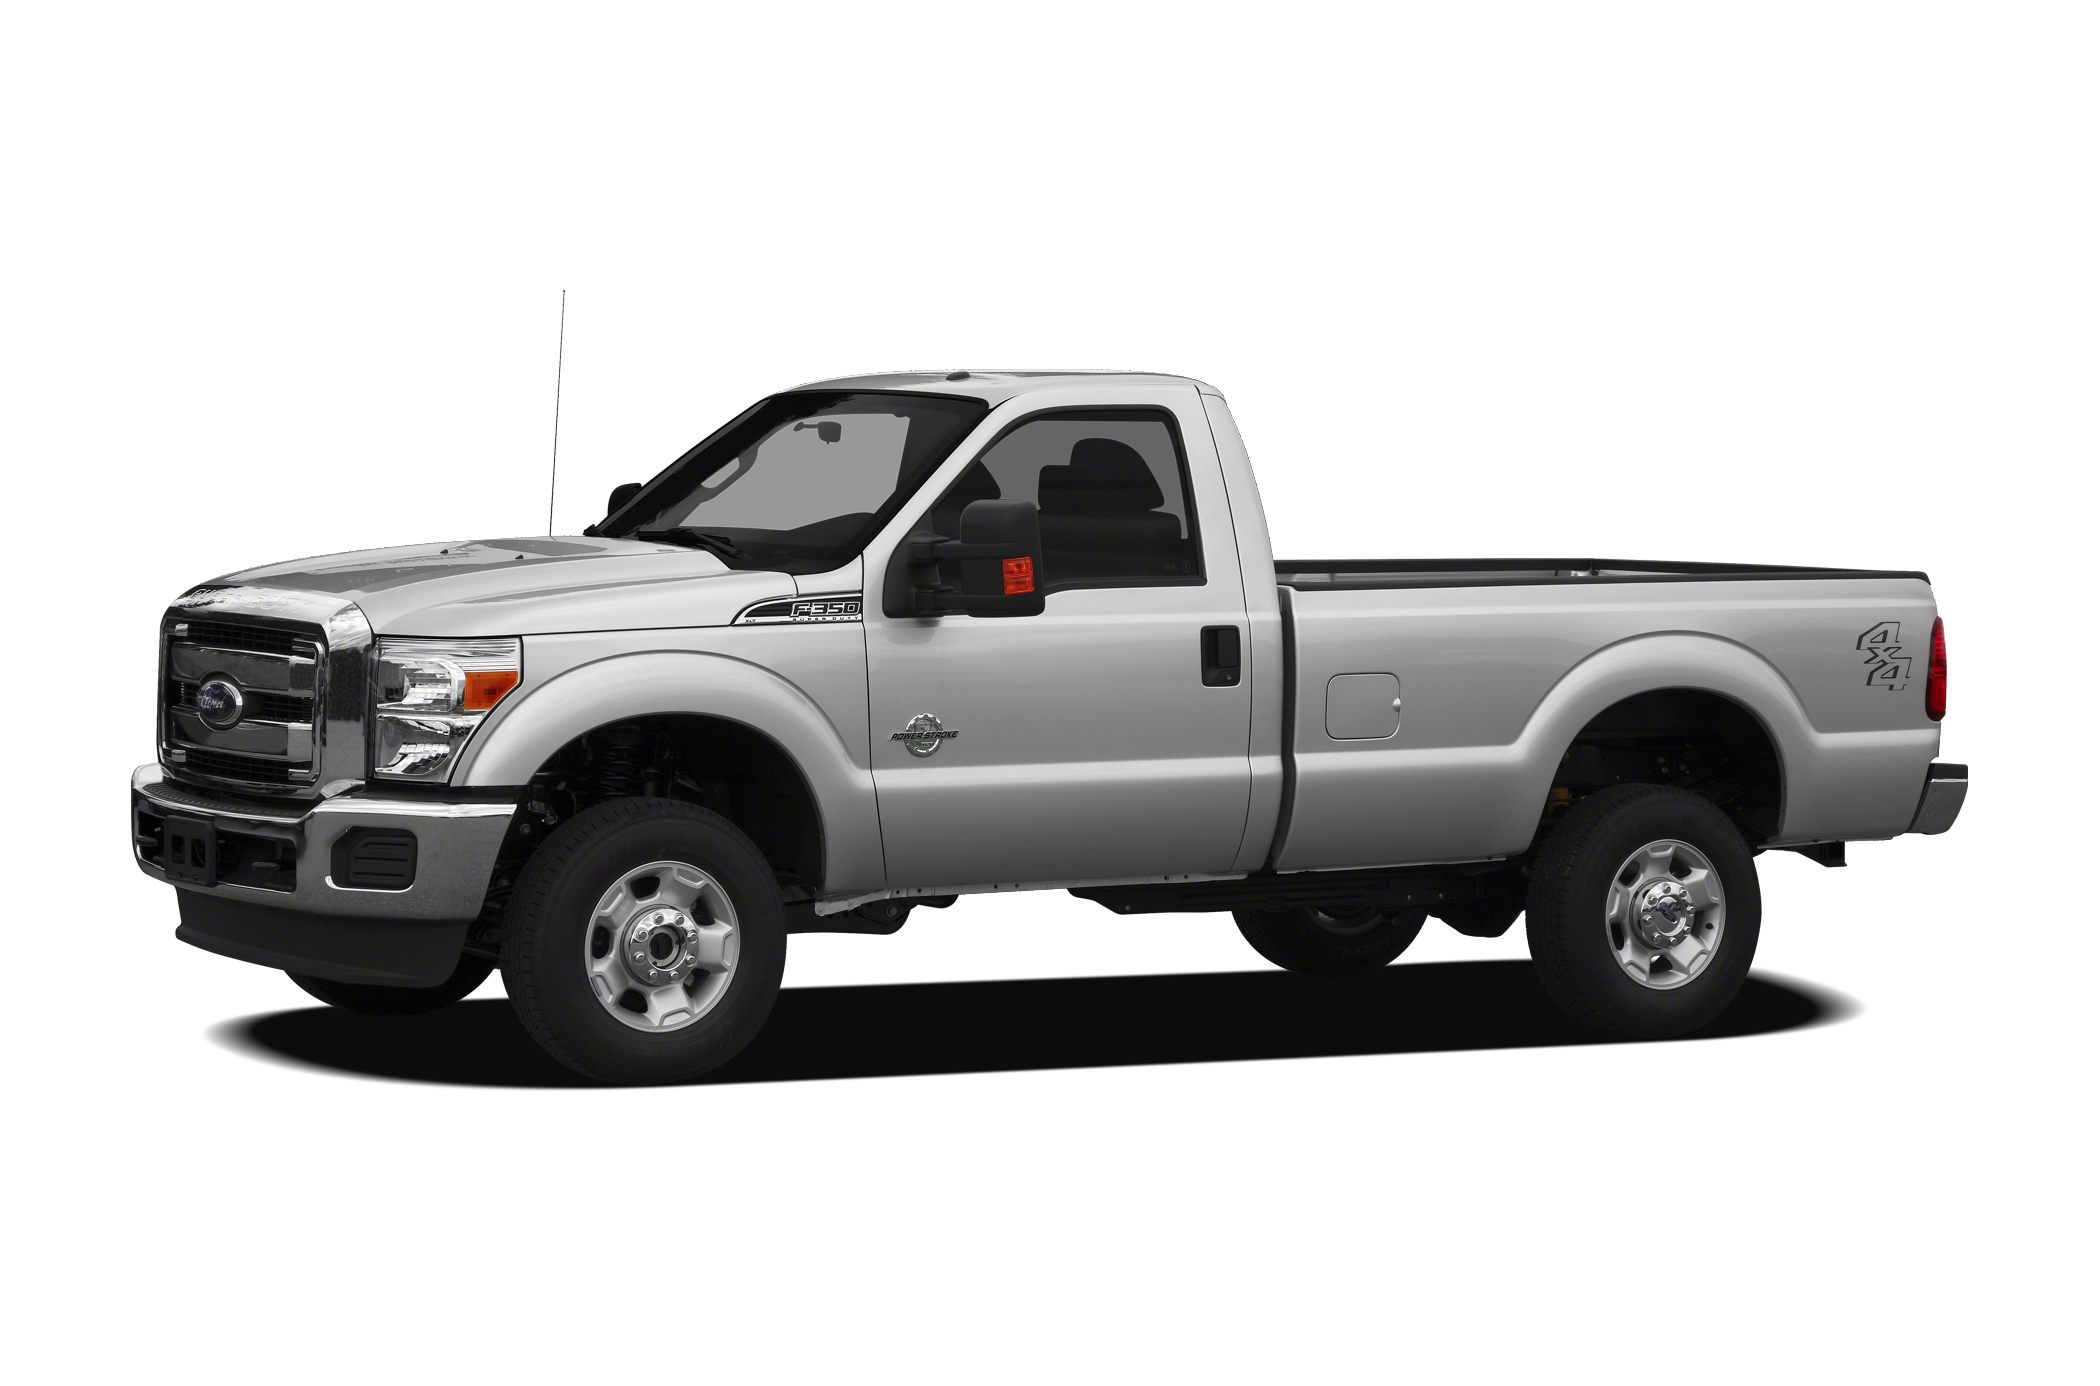 2011 Ford F350 XLT Crew Cab Pickup for sale in Hermiston for $36,000 with 51,715 miles